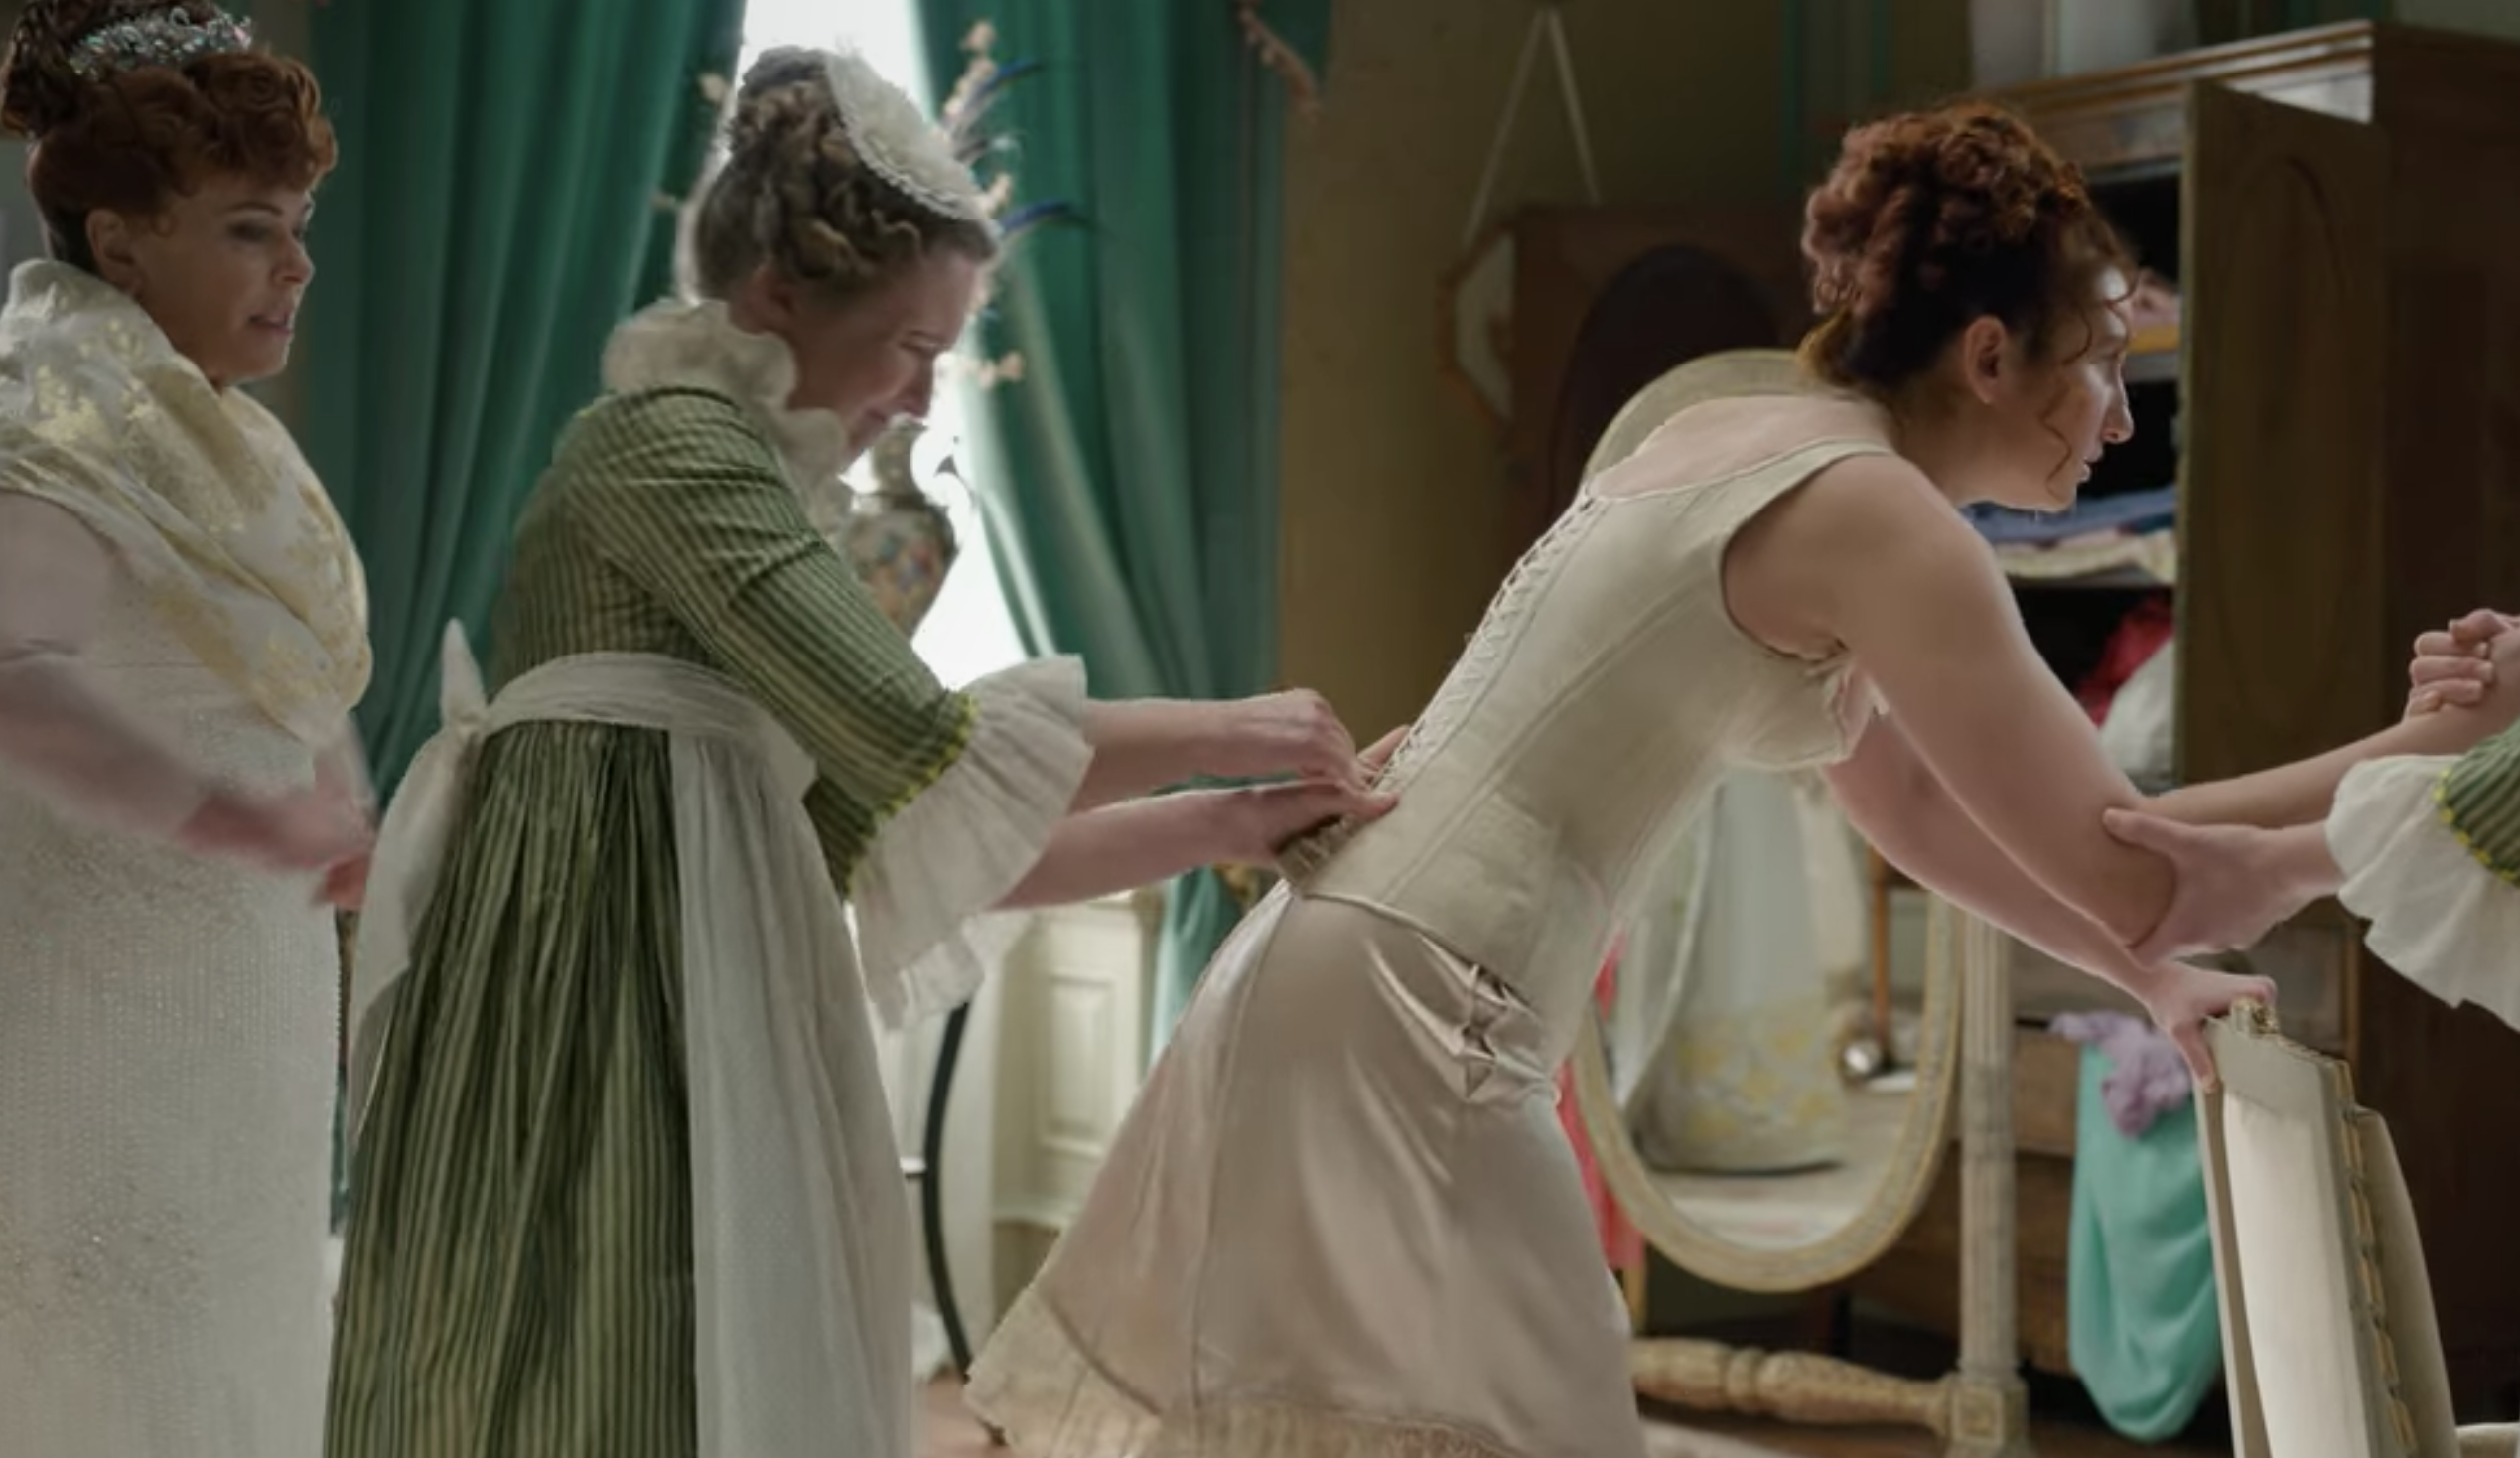 Prudence Featherington getting her corset tightened